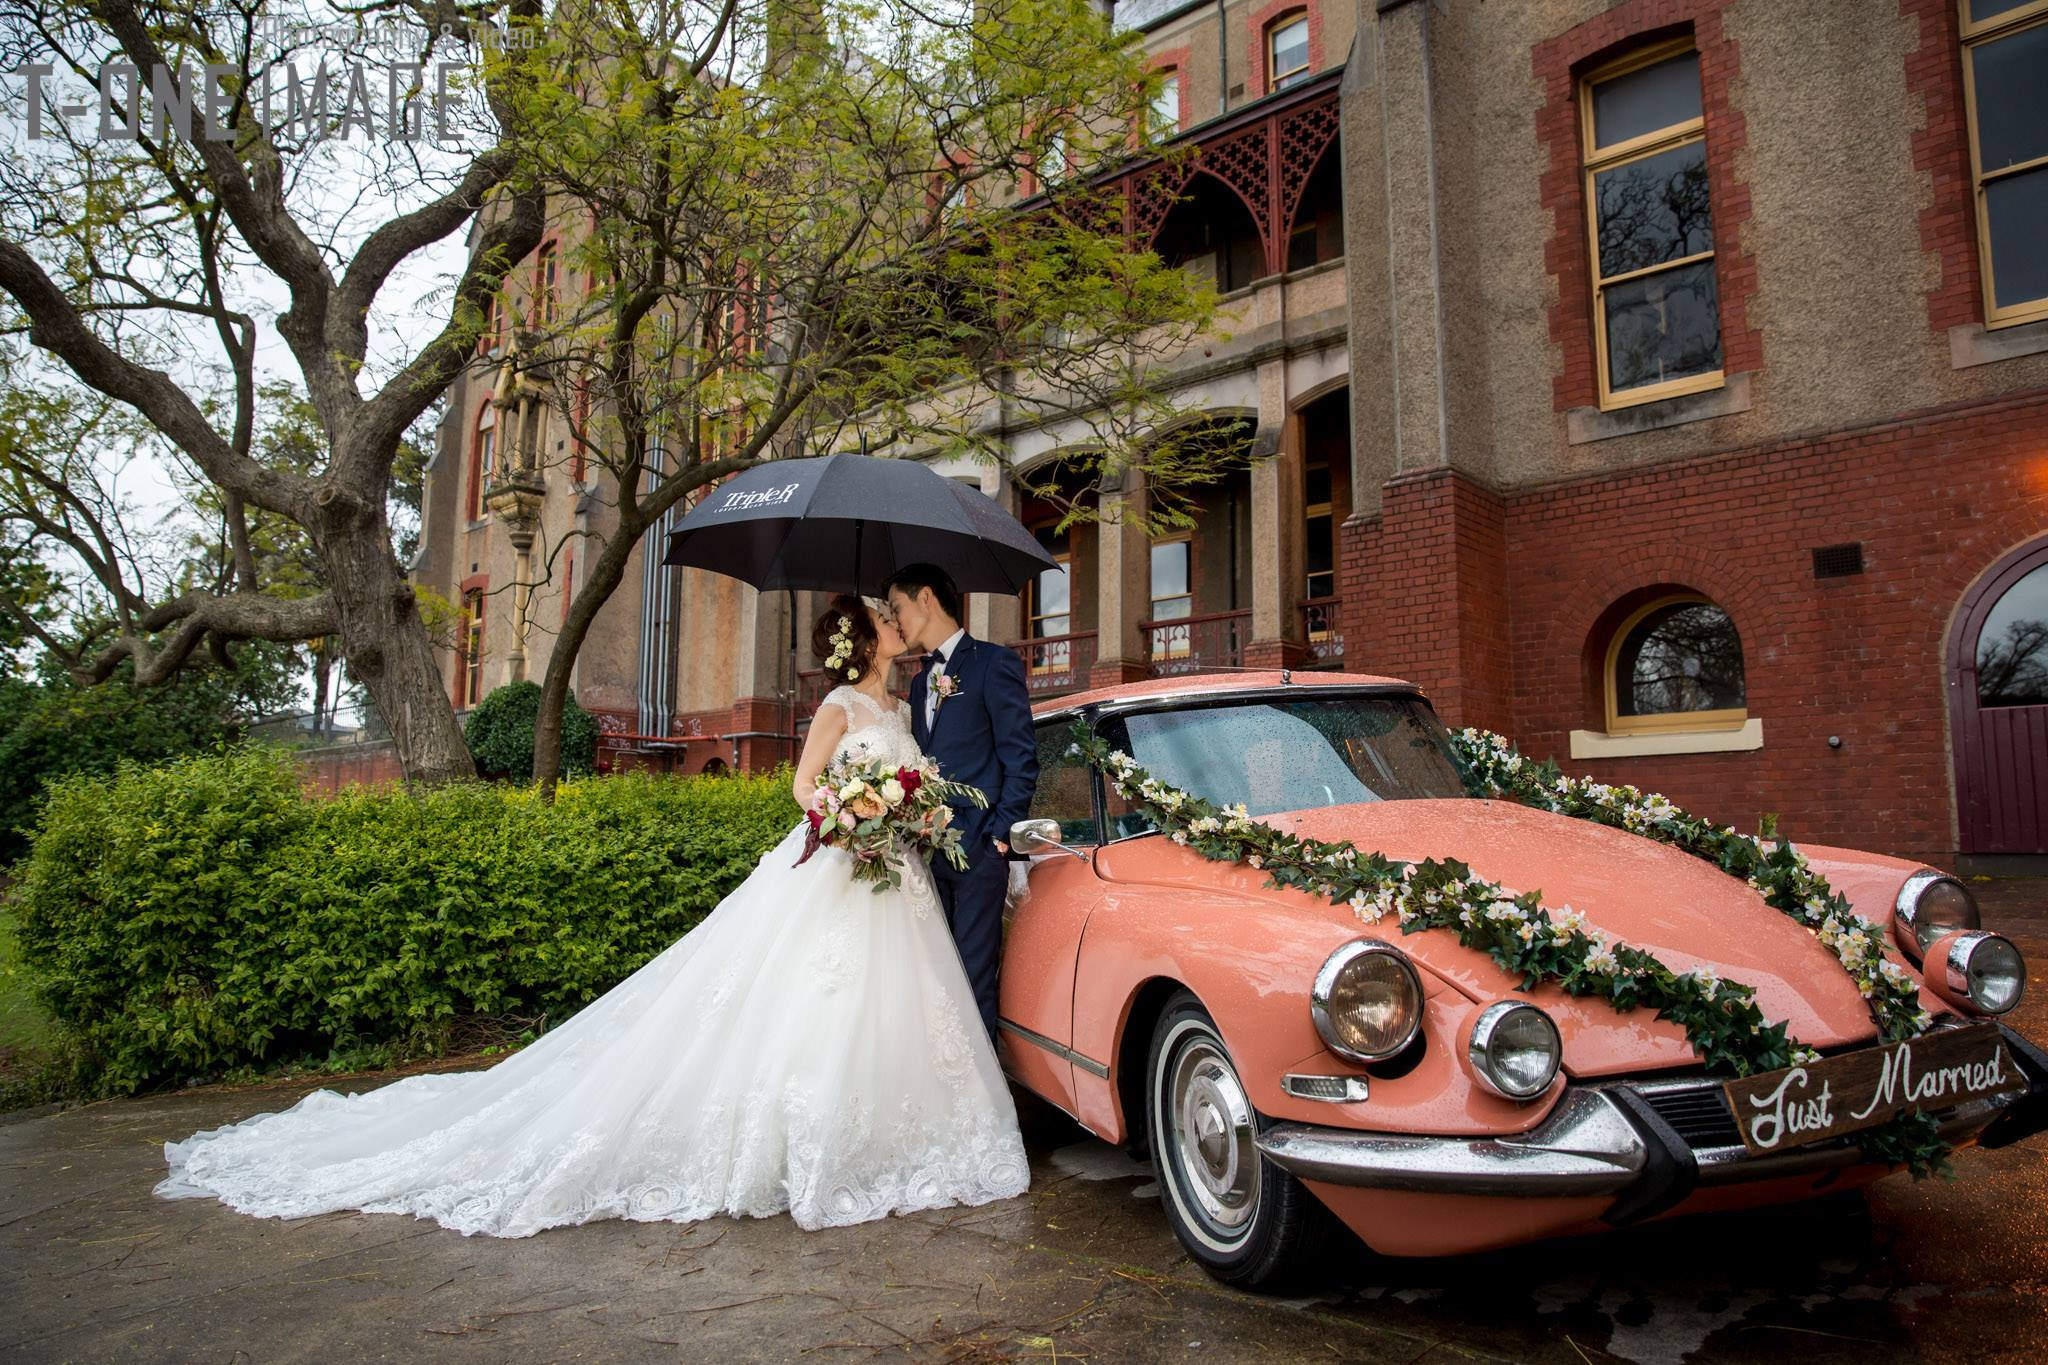 Triple R Luxury Car Hire Melbourne Wedding Services Melbourne